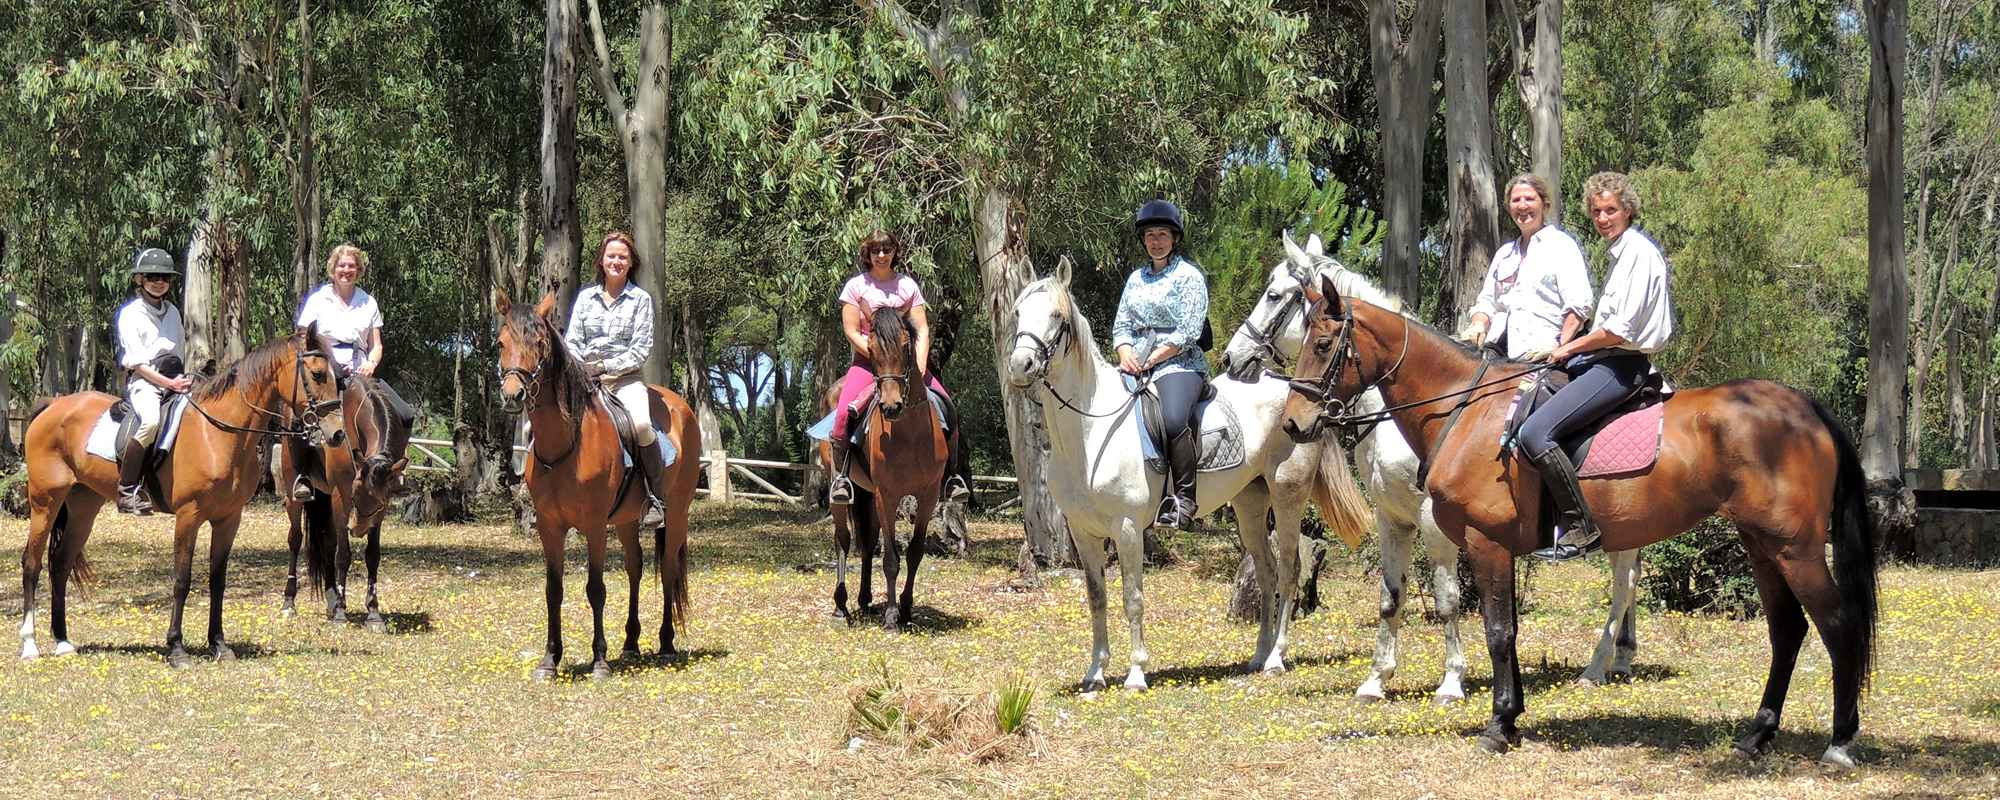 Forest horse riding on our equestrian holidays.